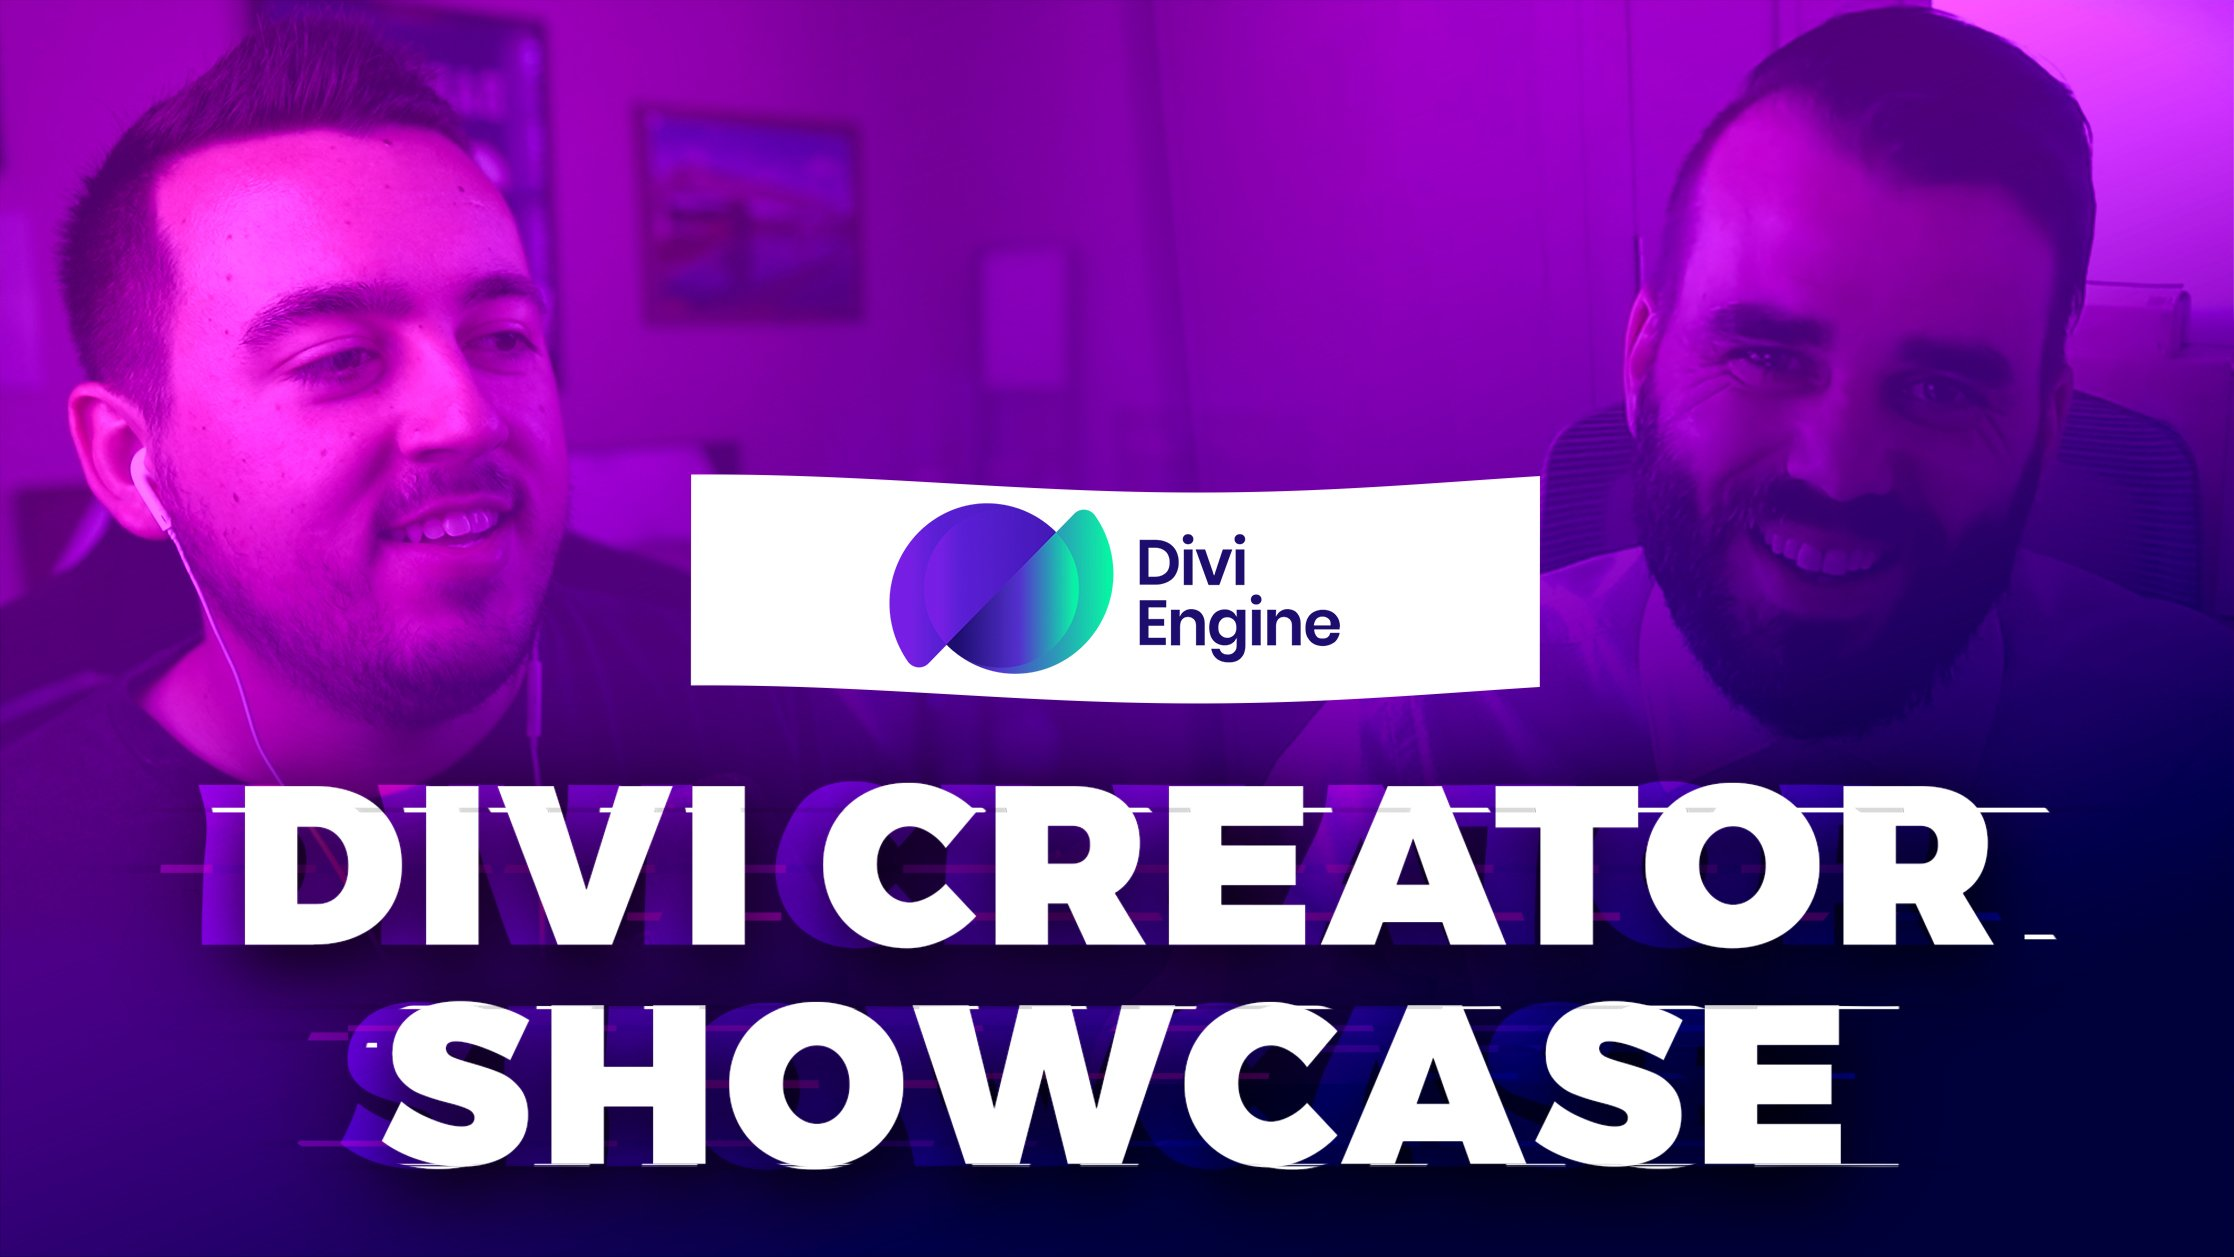 Divi Creator Showcase: Divi Engine